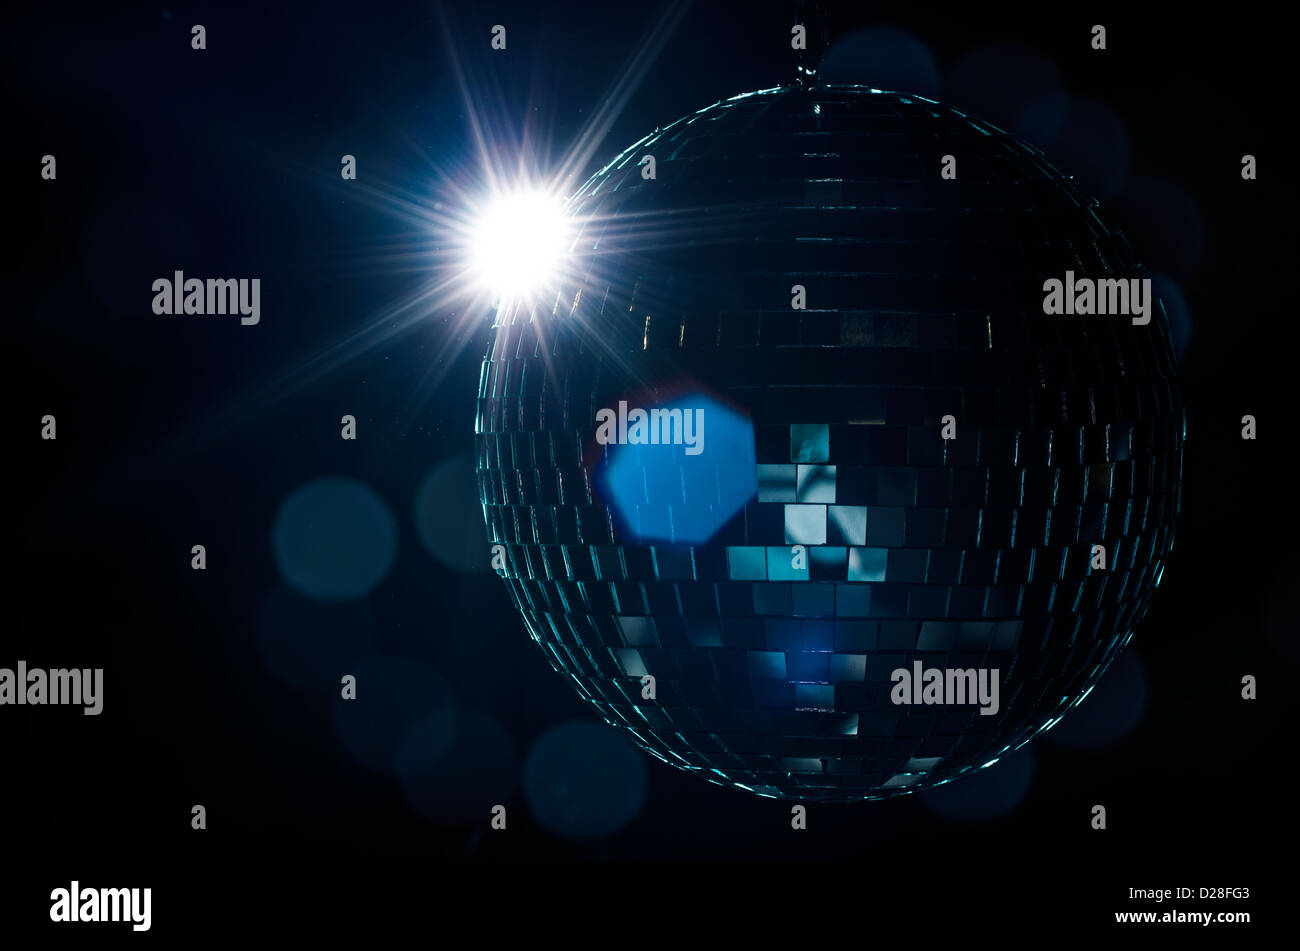 A disco ball with light flare and blurry lights on background. A nightlife image to be used as example on party - Stock Image